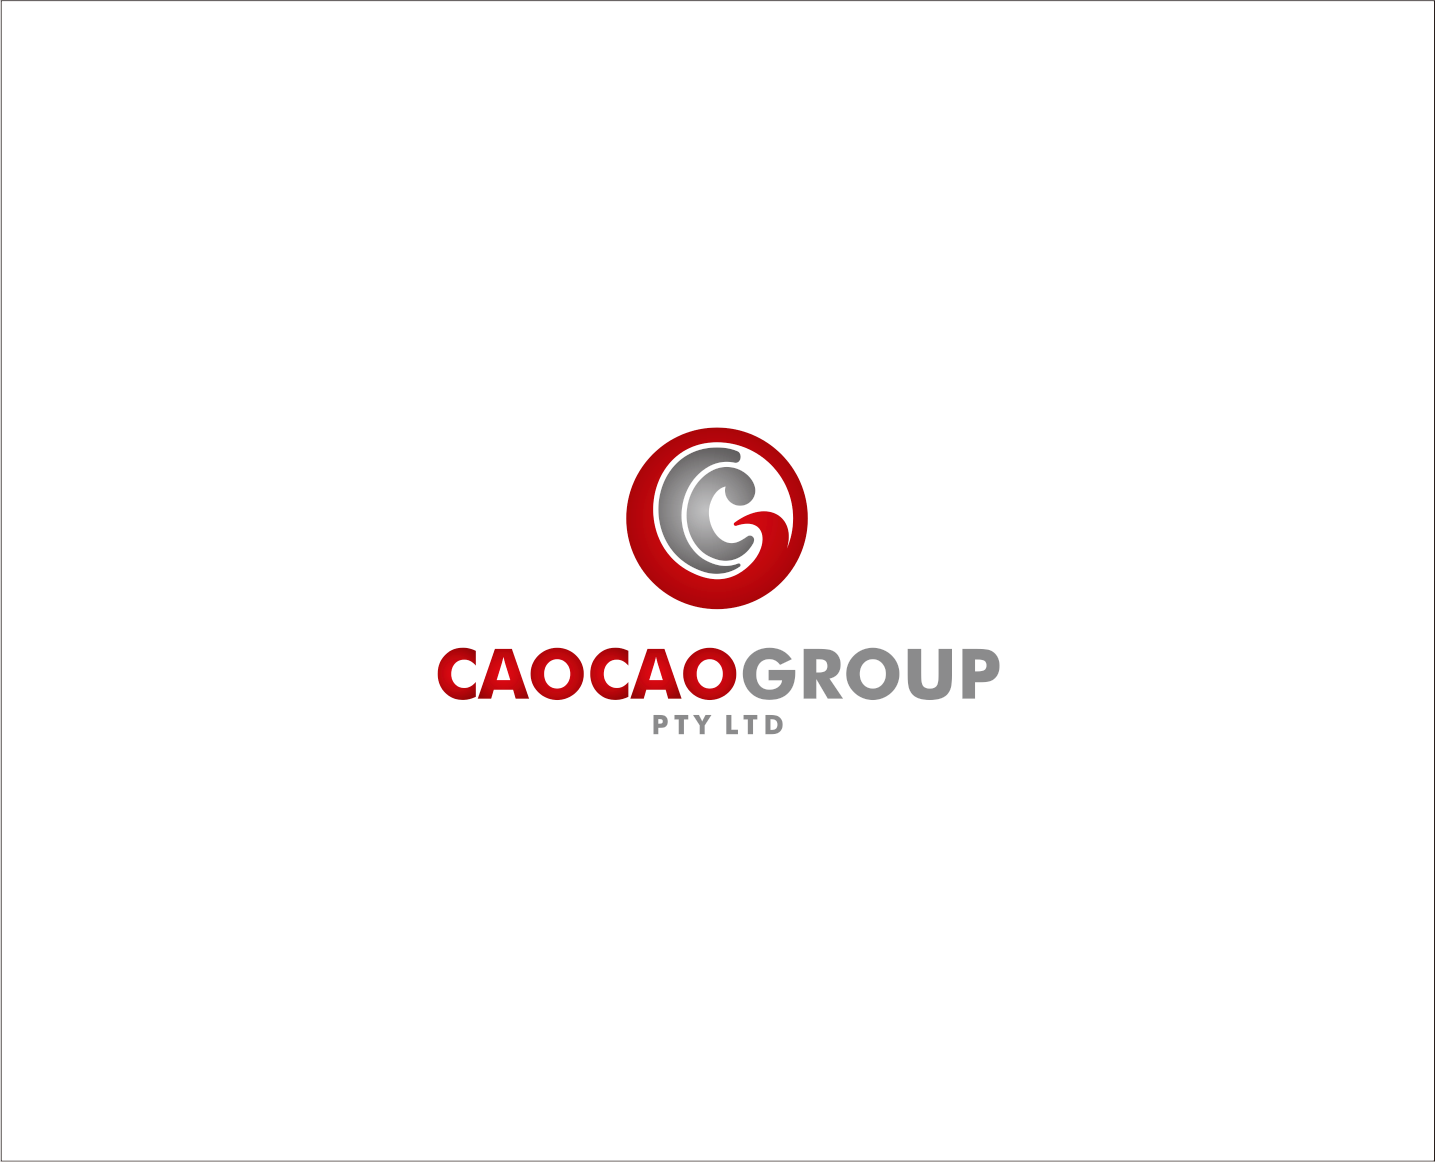 Logo Design by Armada Jamaluddin - Entry No. 136 in the Logo Design Contest cao cao group pty ltd Logo Design.